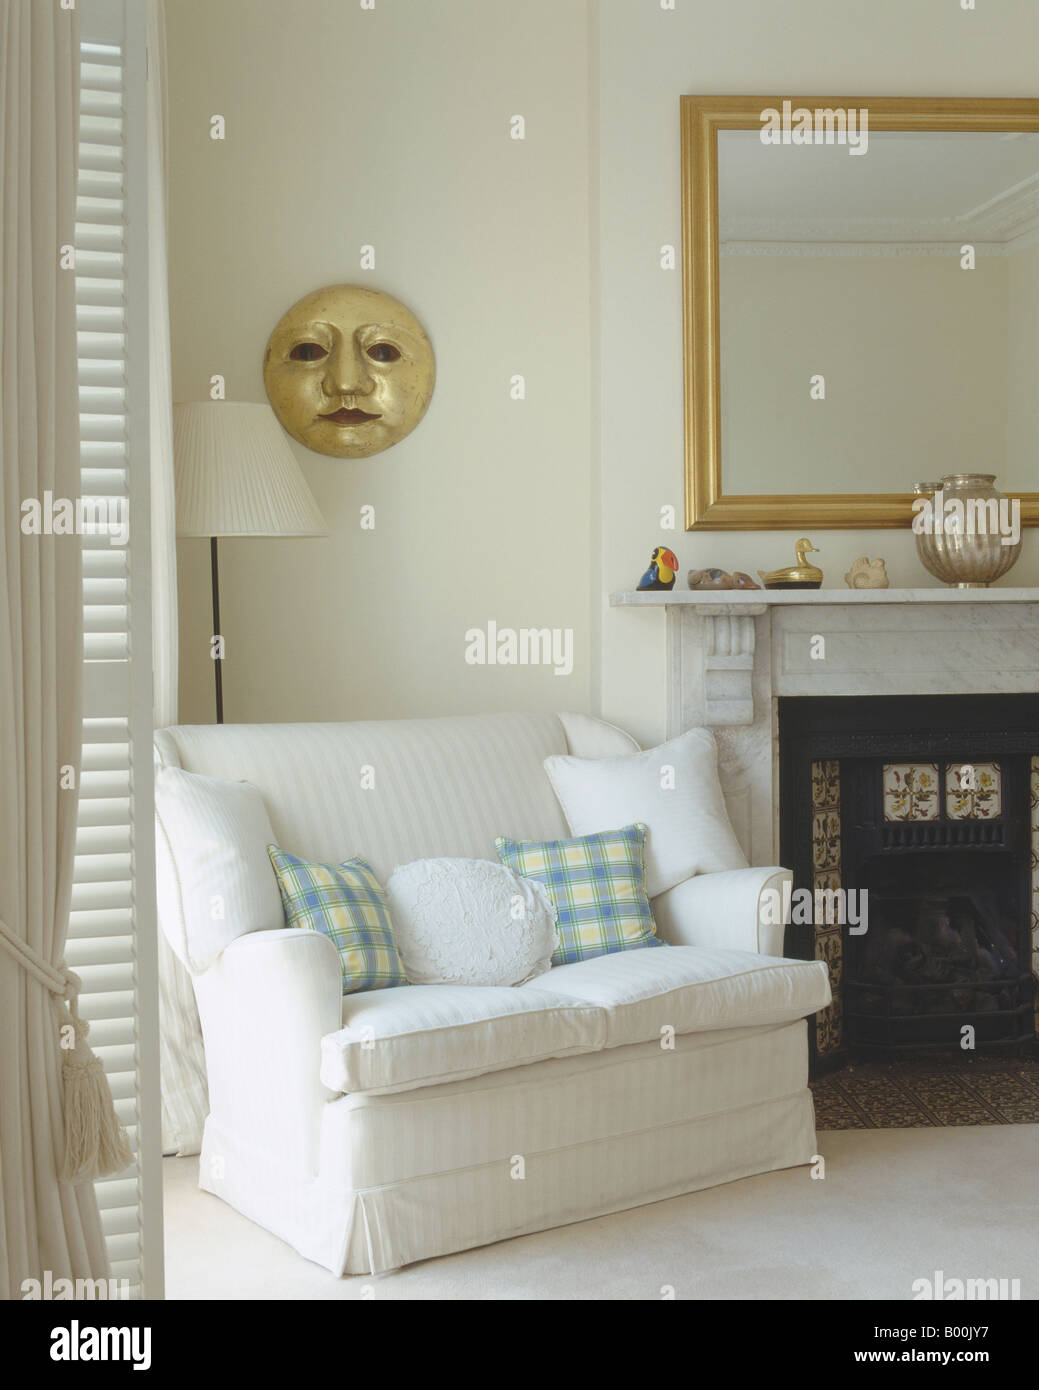 Charmant White And Checked Cushions On Small White Sofa Beside Fireplace In White  Living Room With Gilt Sun Sculpture On Wall